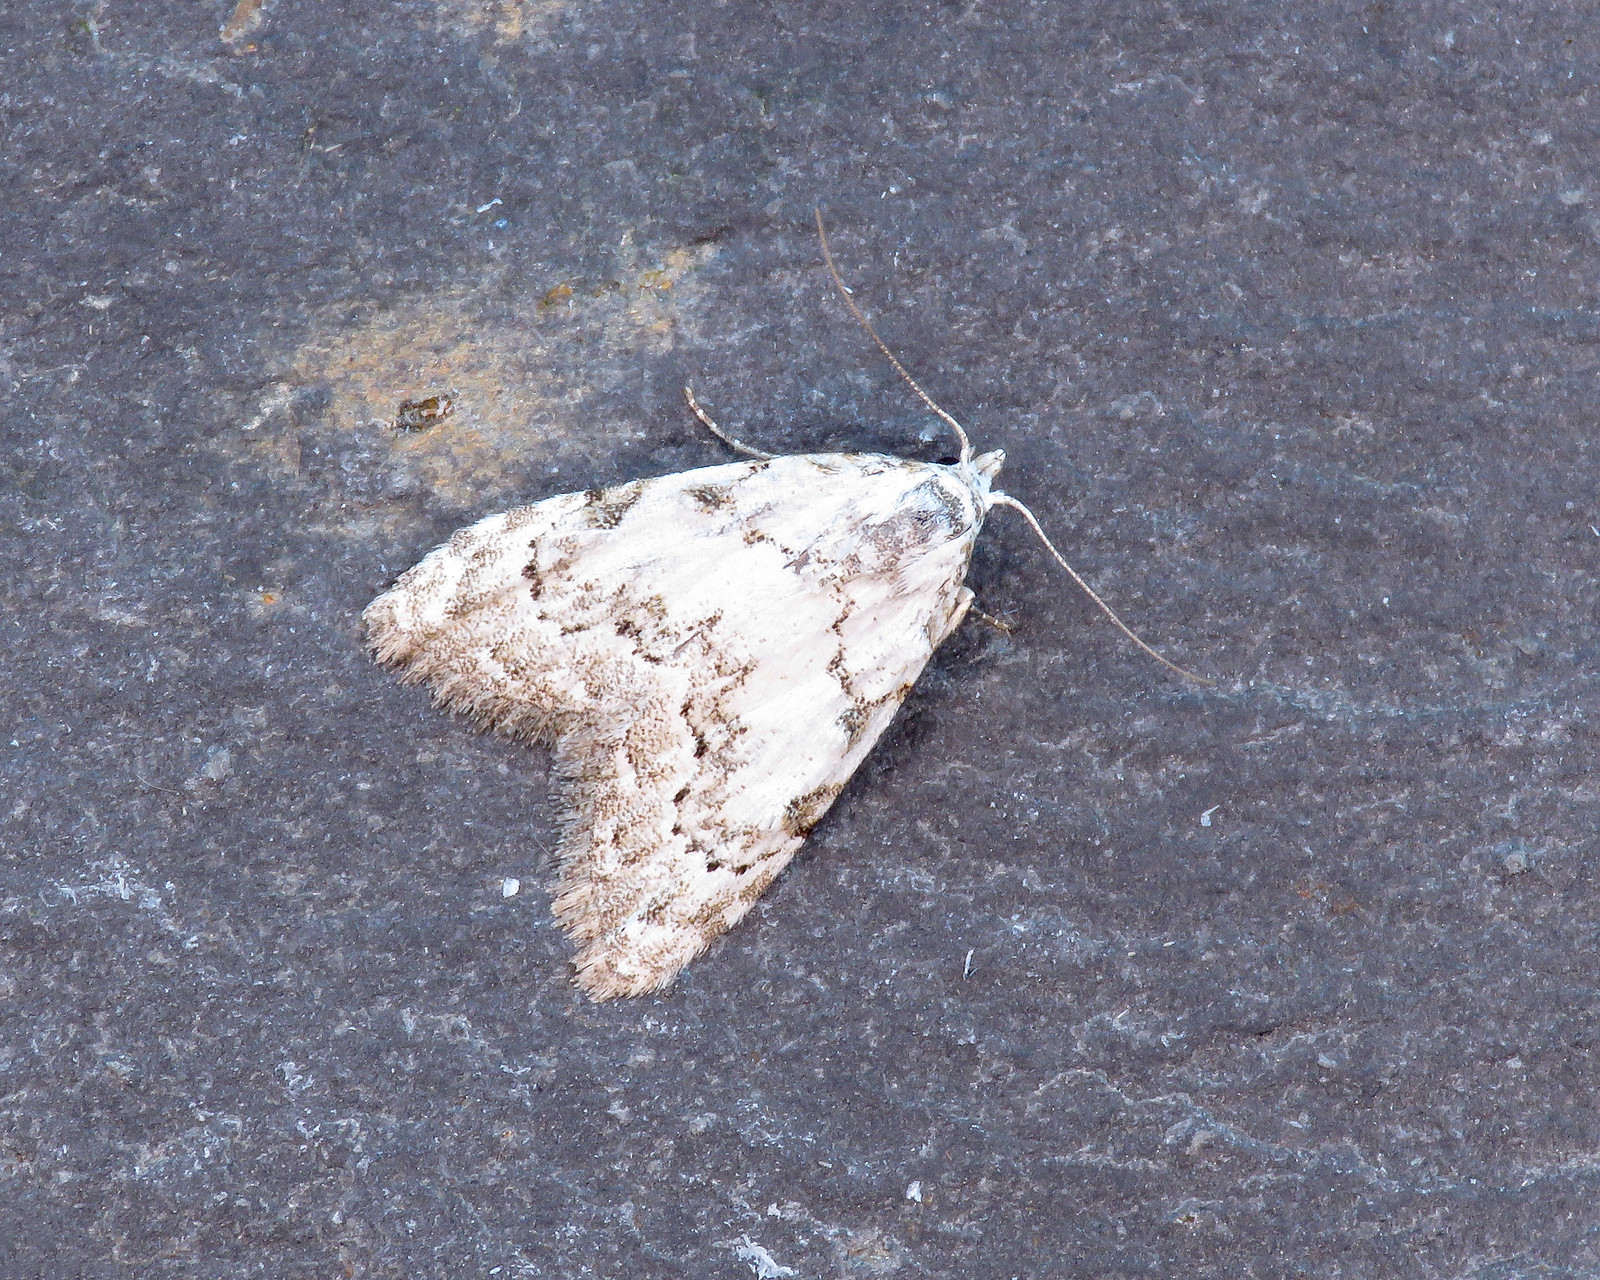 74.004 Least Black Arches - Nola confusalis